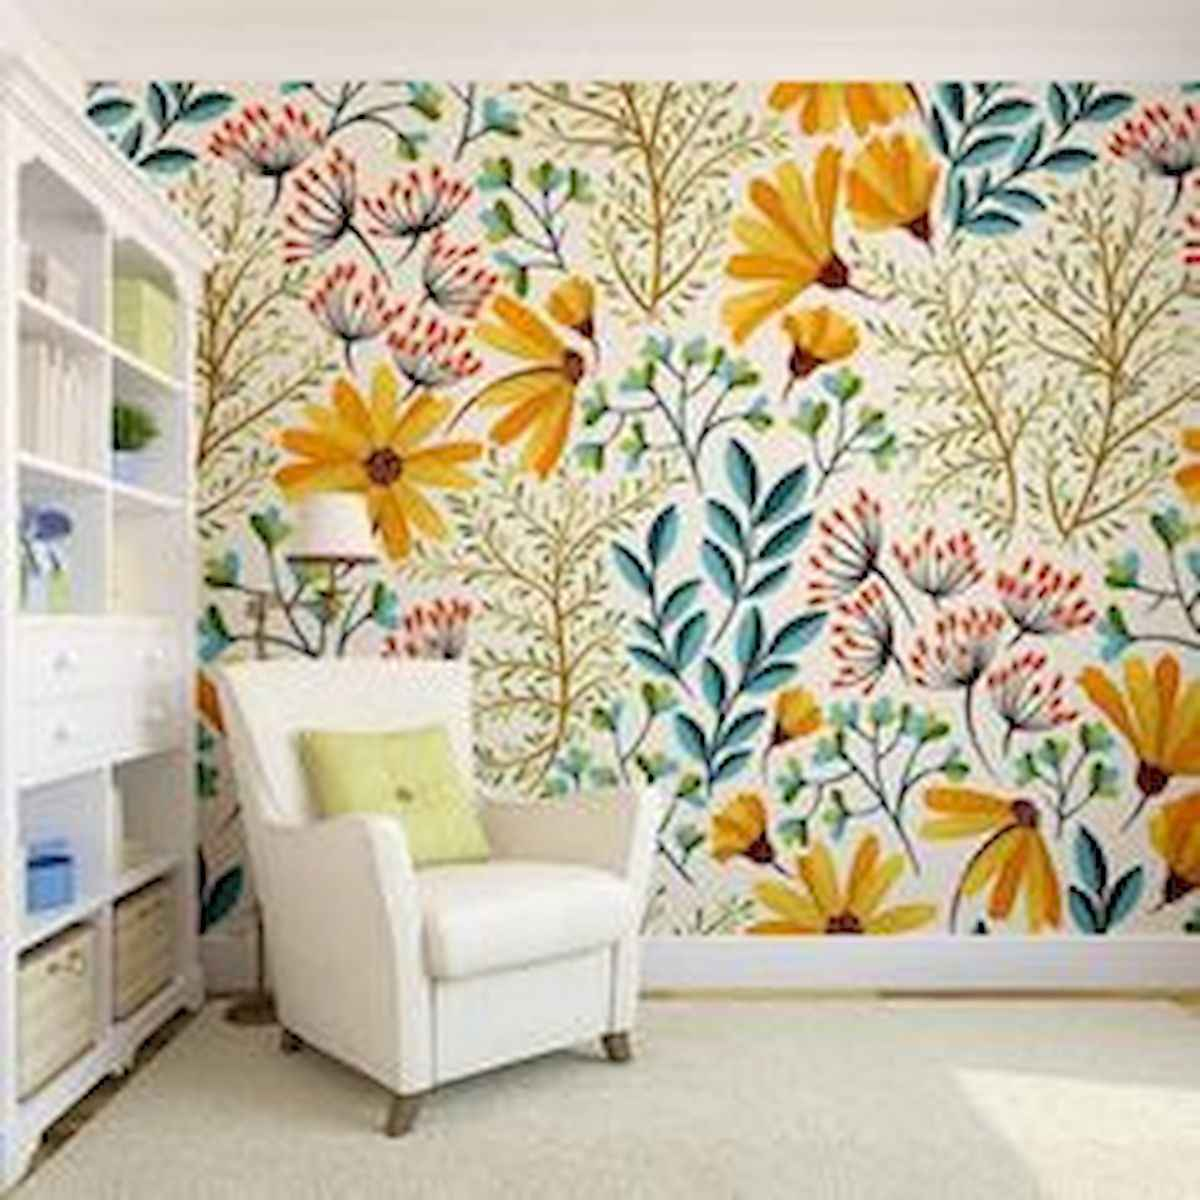 90+ Fantastic Colorful Apartment Decor Ideas And Remodel for Summer Project (33)